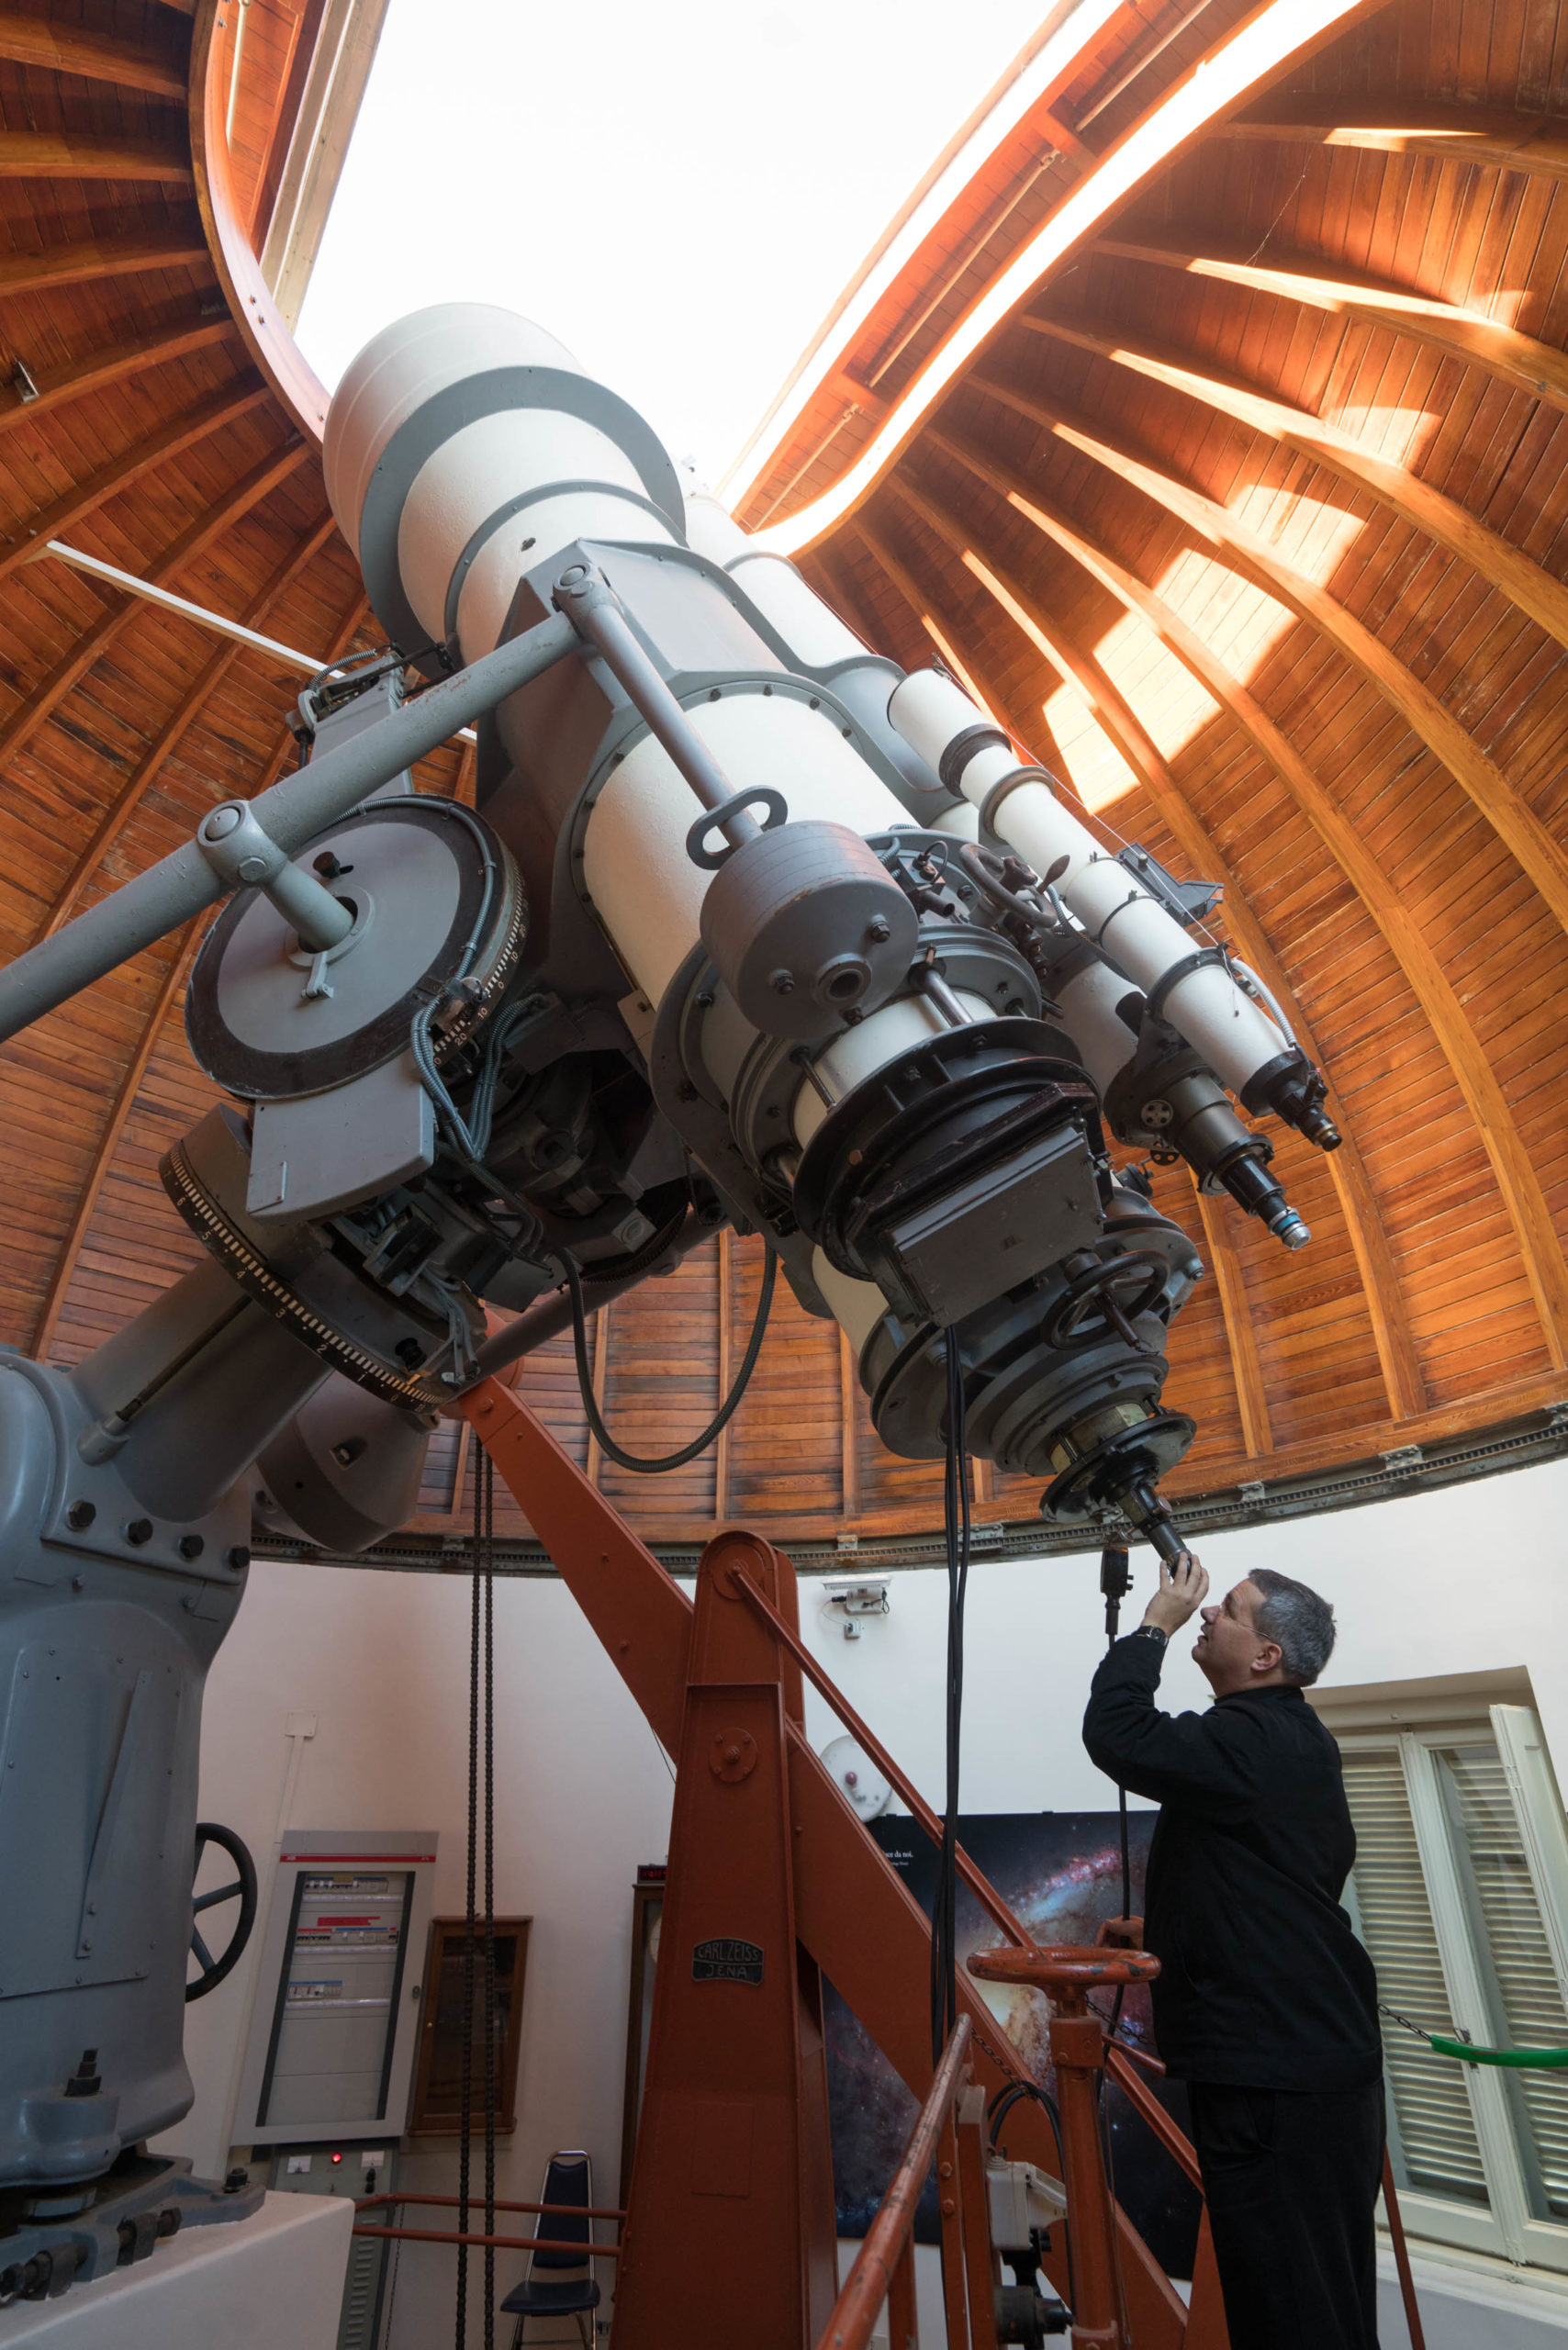 David Brown with the Zeiss Double Astrograph at Castel Gandolfo